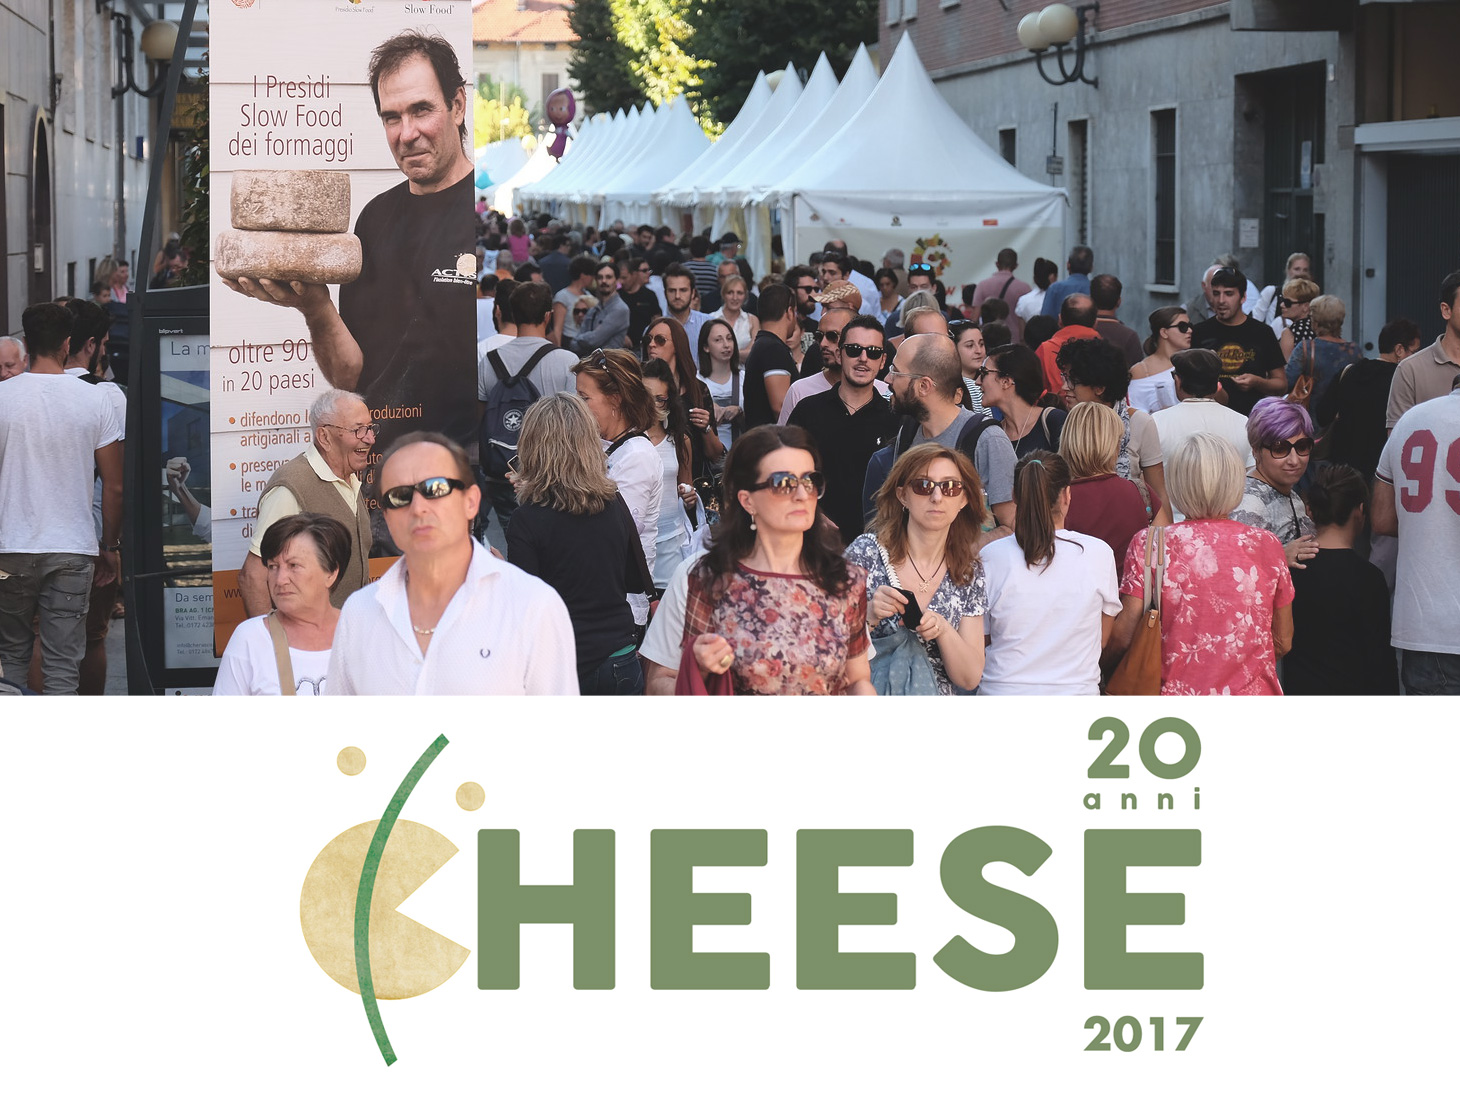 Cheese 15 - 18 September 2017